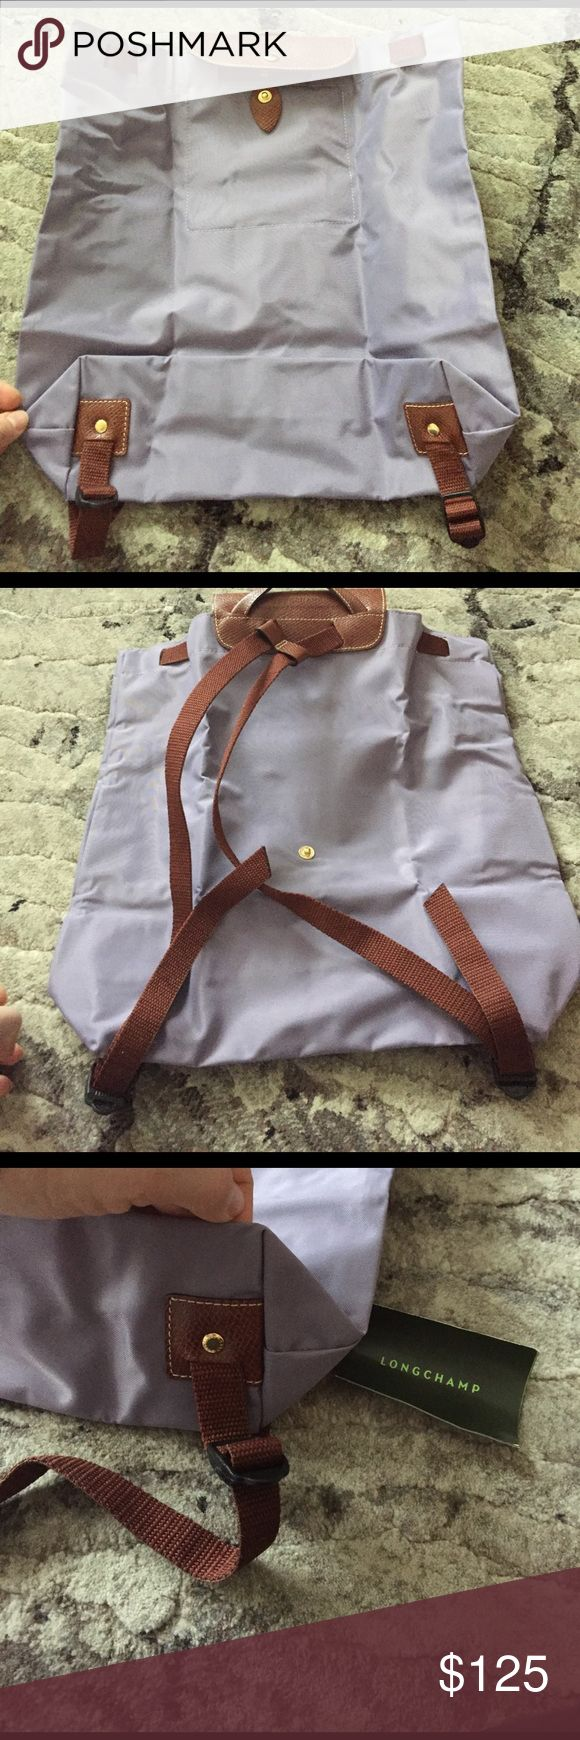 """Longchamp Backpack Brand New Authentic Longchamp Backpack, pull straps to close, foldable, very practical. Color is light Violet. Size is 5.5"""" x 7"""" when folded. Full open size is 14.5"""" x 14.5"""" x 4"""" depth. Longchamp Bags Backpacks"""